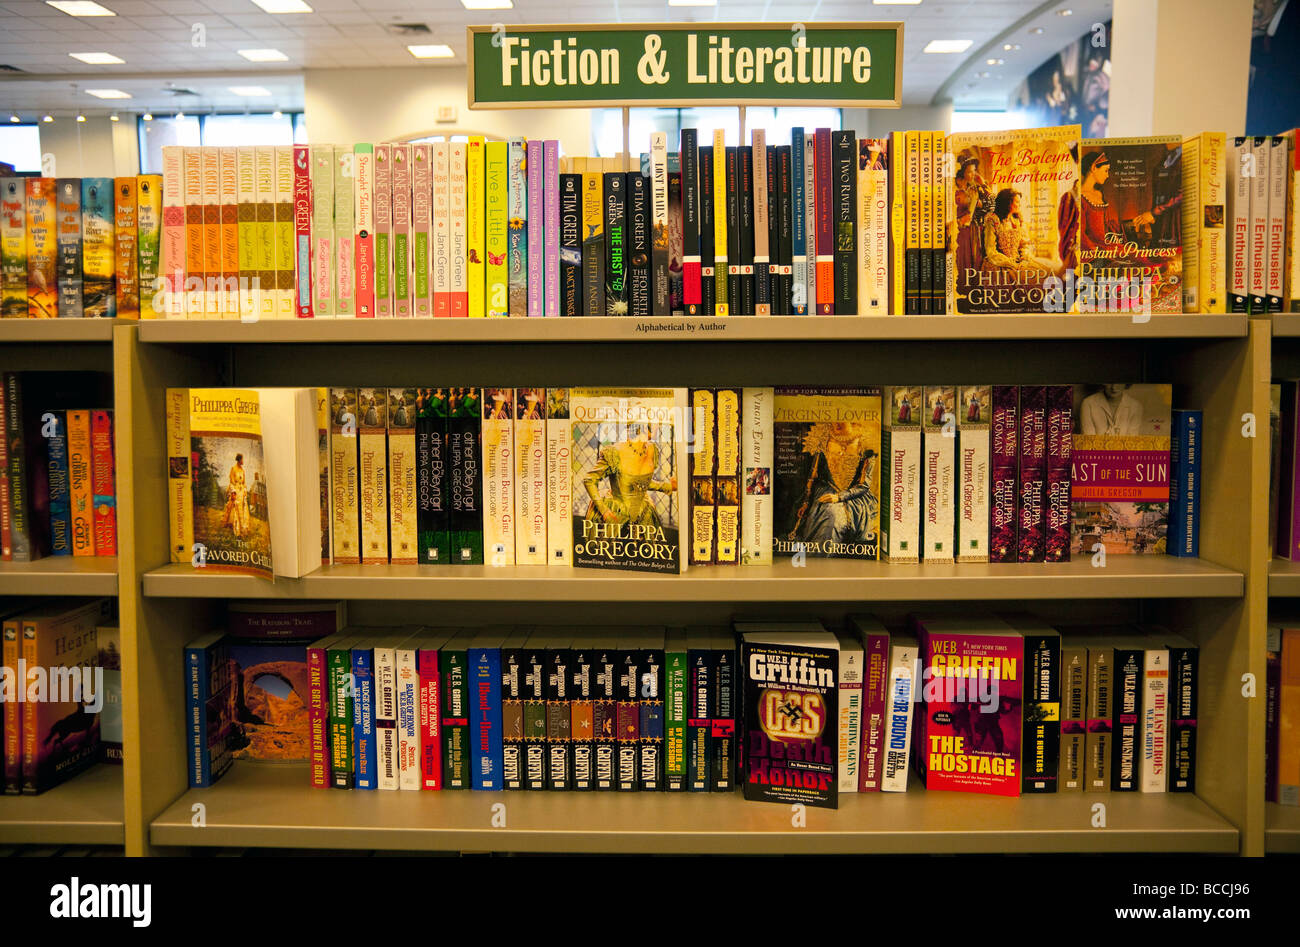 Fiction And Literature Books On Shelves Barnes And Noble